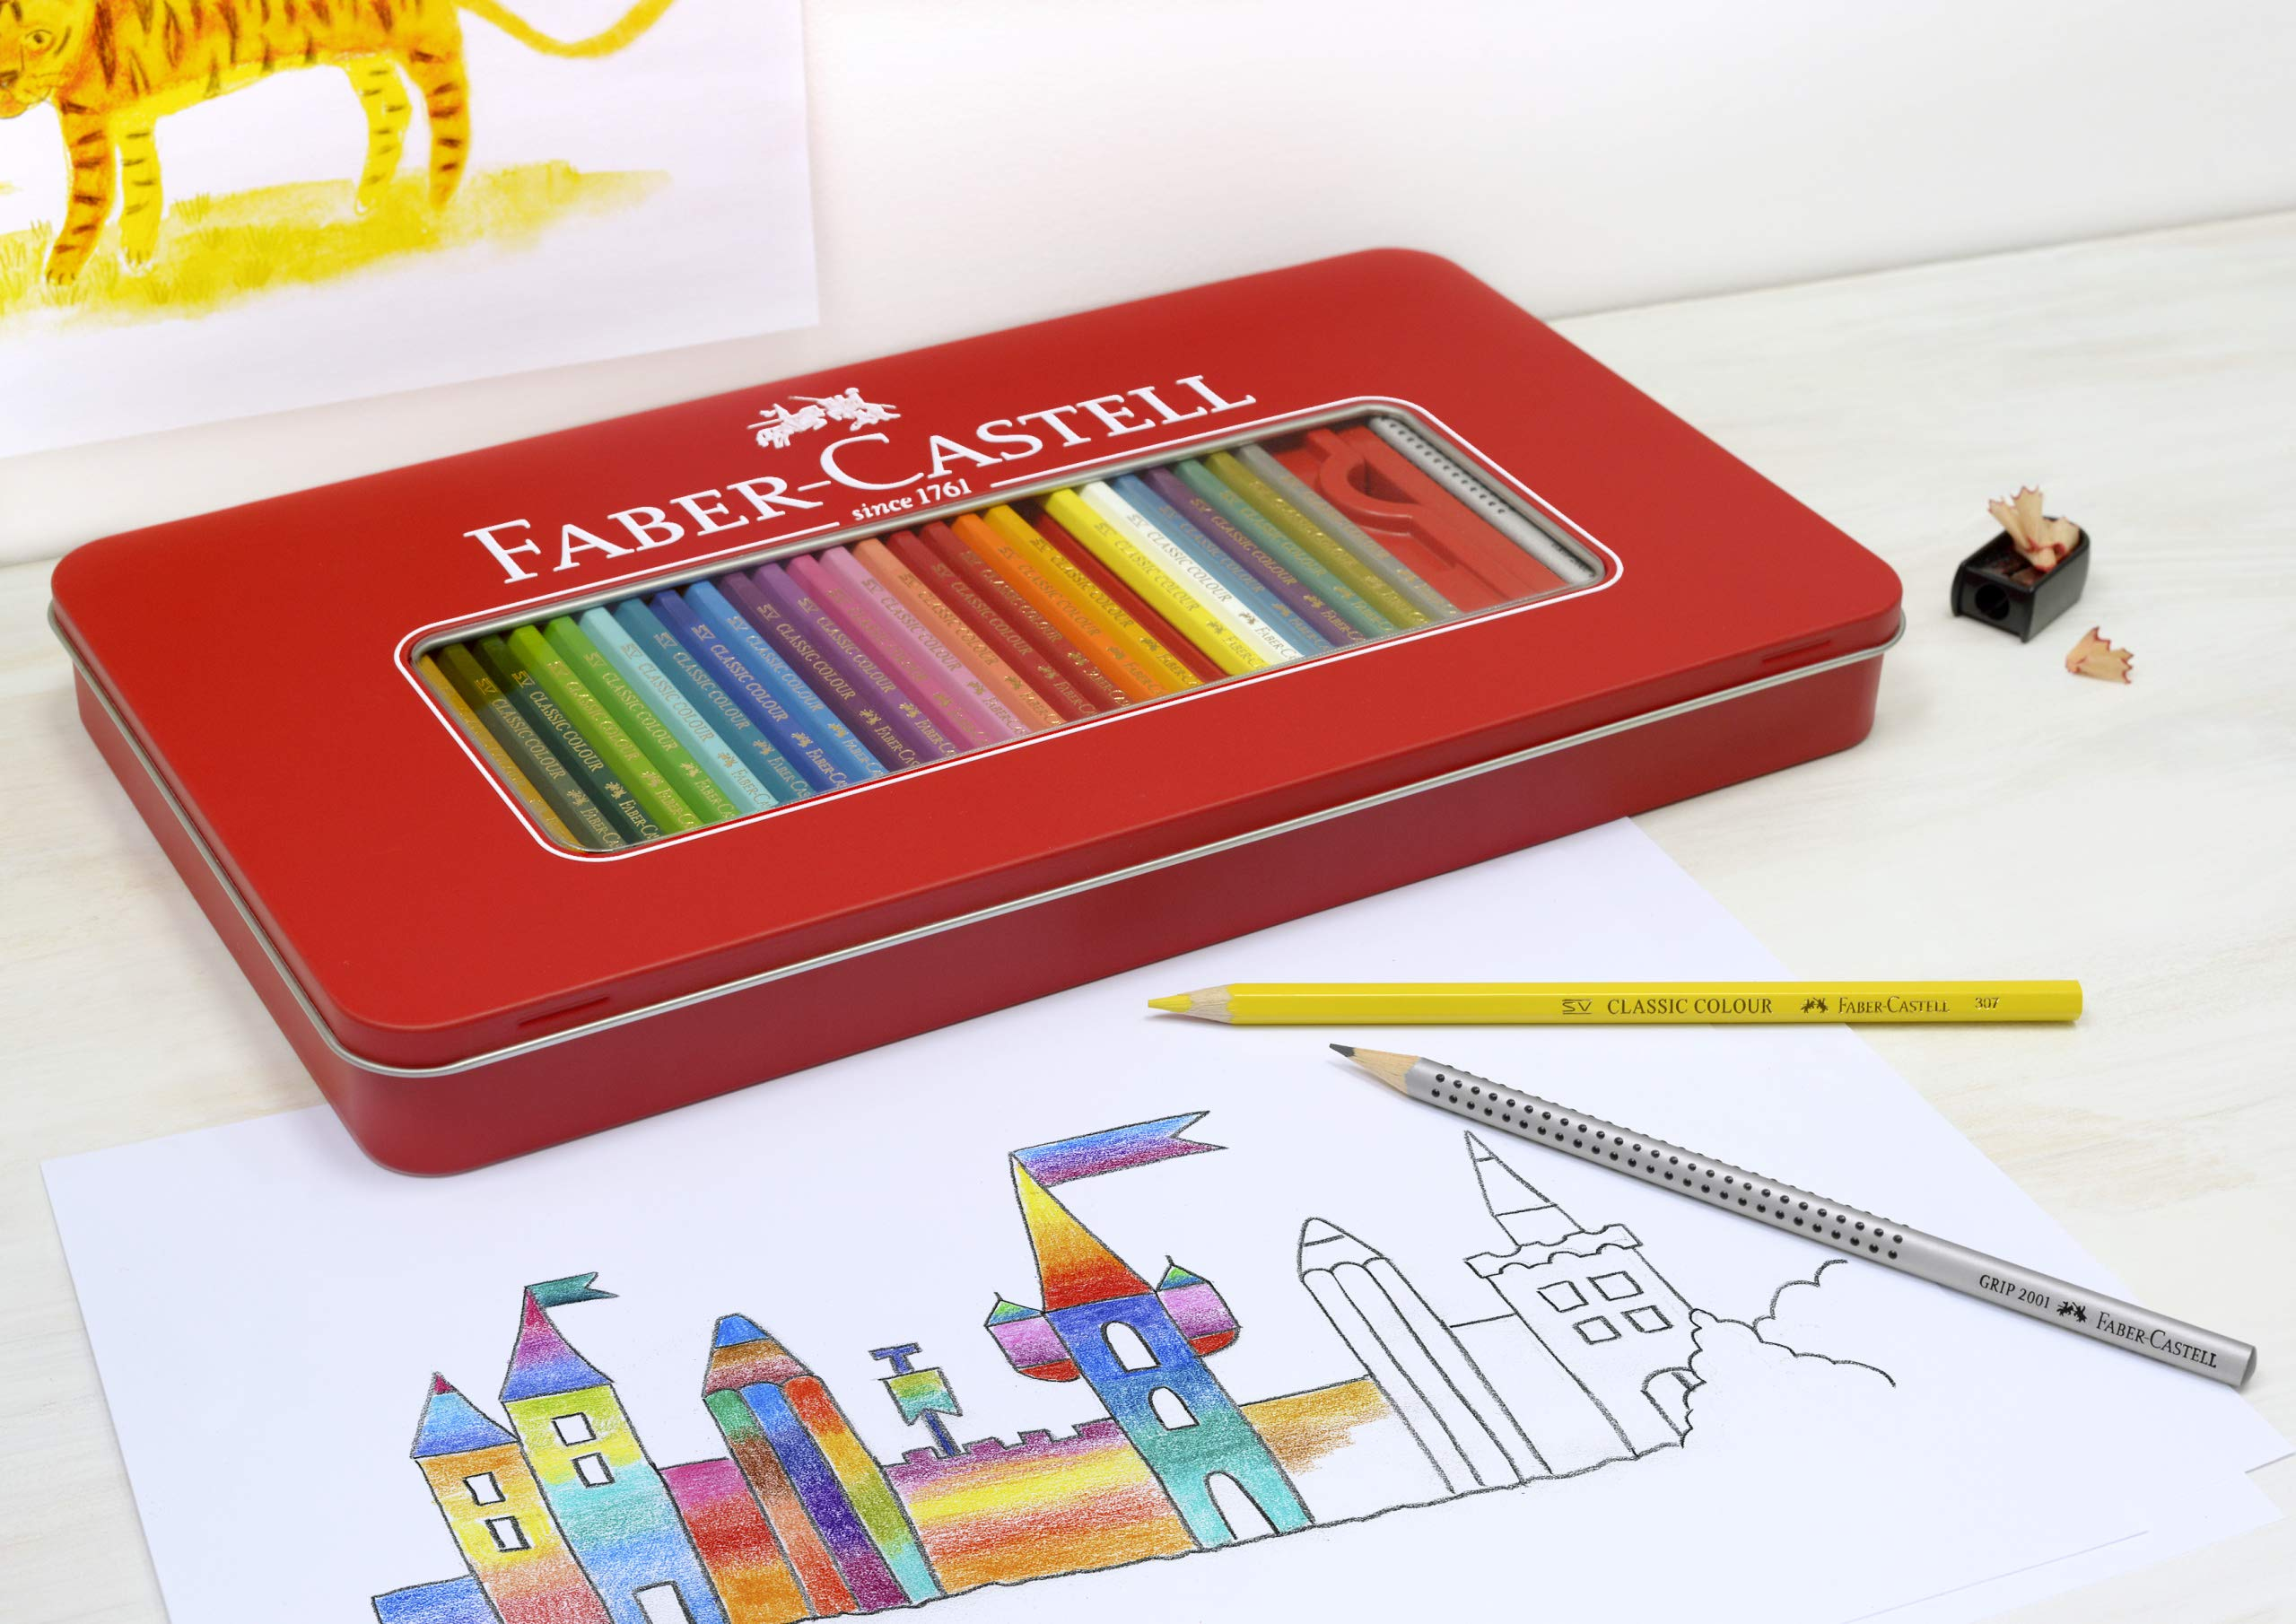 Creativity for Kids Faber Castell Classic Colored Pencils Tin Set, 48 Vibrant Colors in Sturdy Metal Case - Premium Children's Art Products by Creativity for Kids (Image #2)